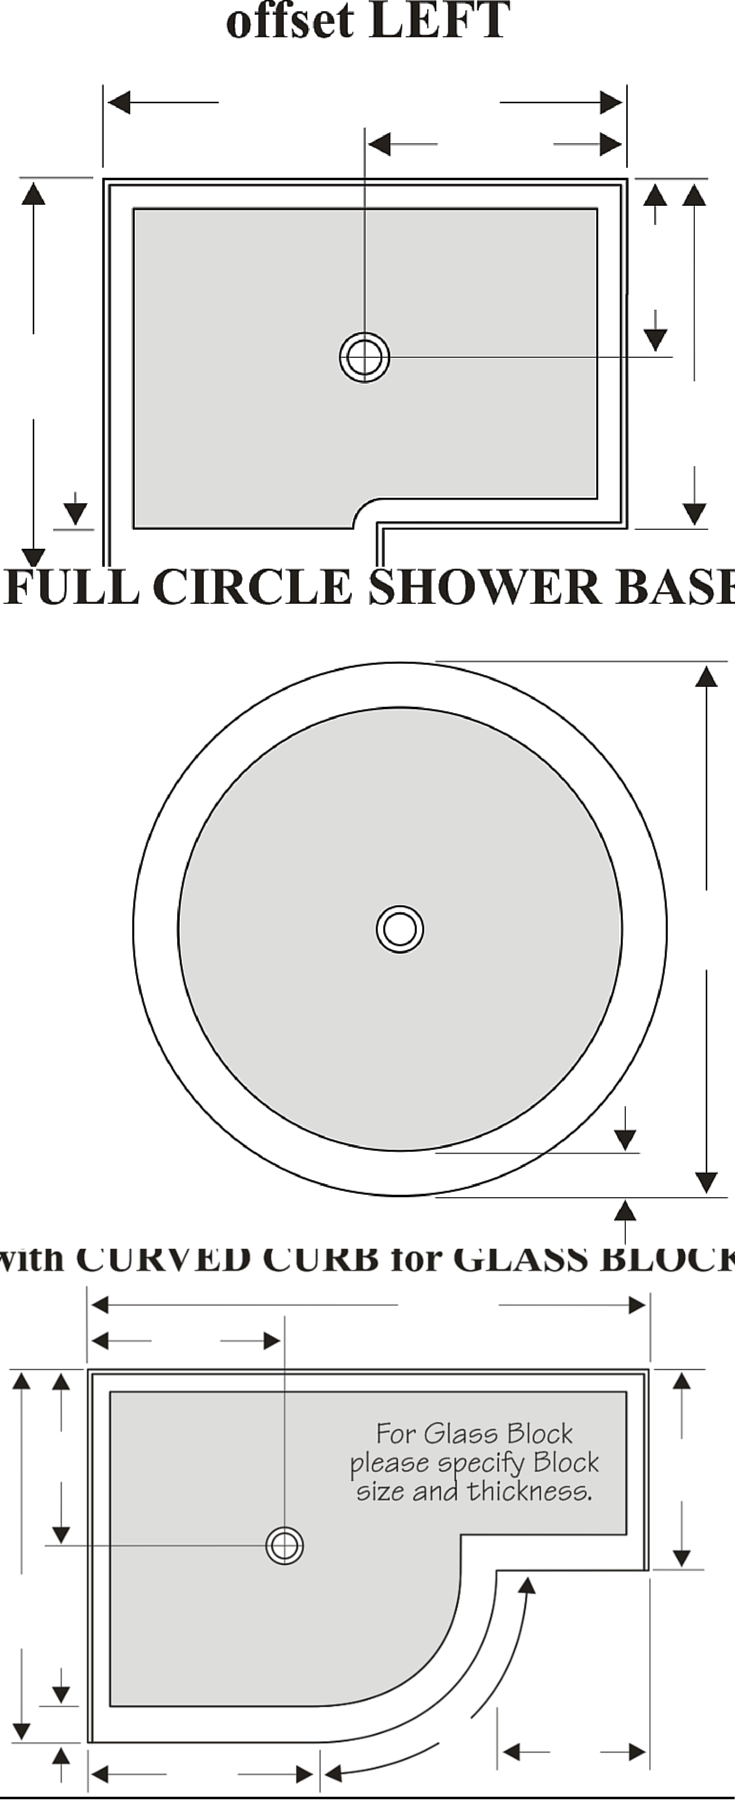 Solid surface and cultured granite shower pans can be round angled or even have an offset design for a walk in shower | Innovate Building Solutions